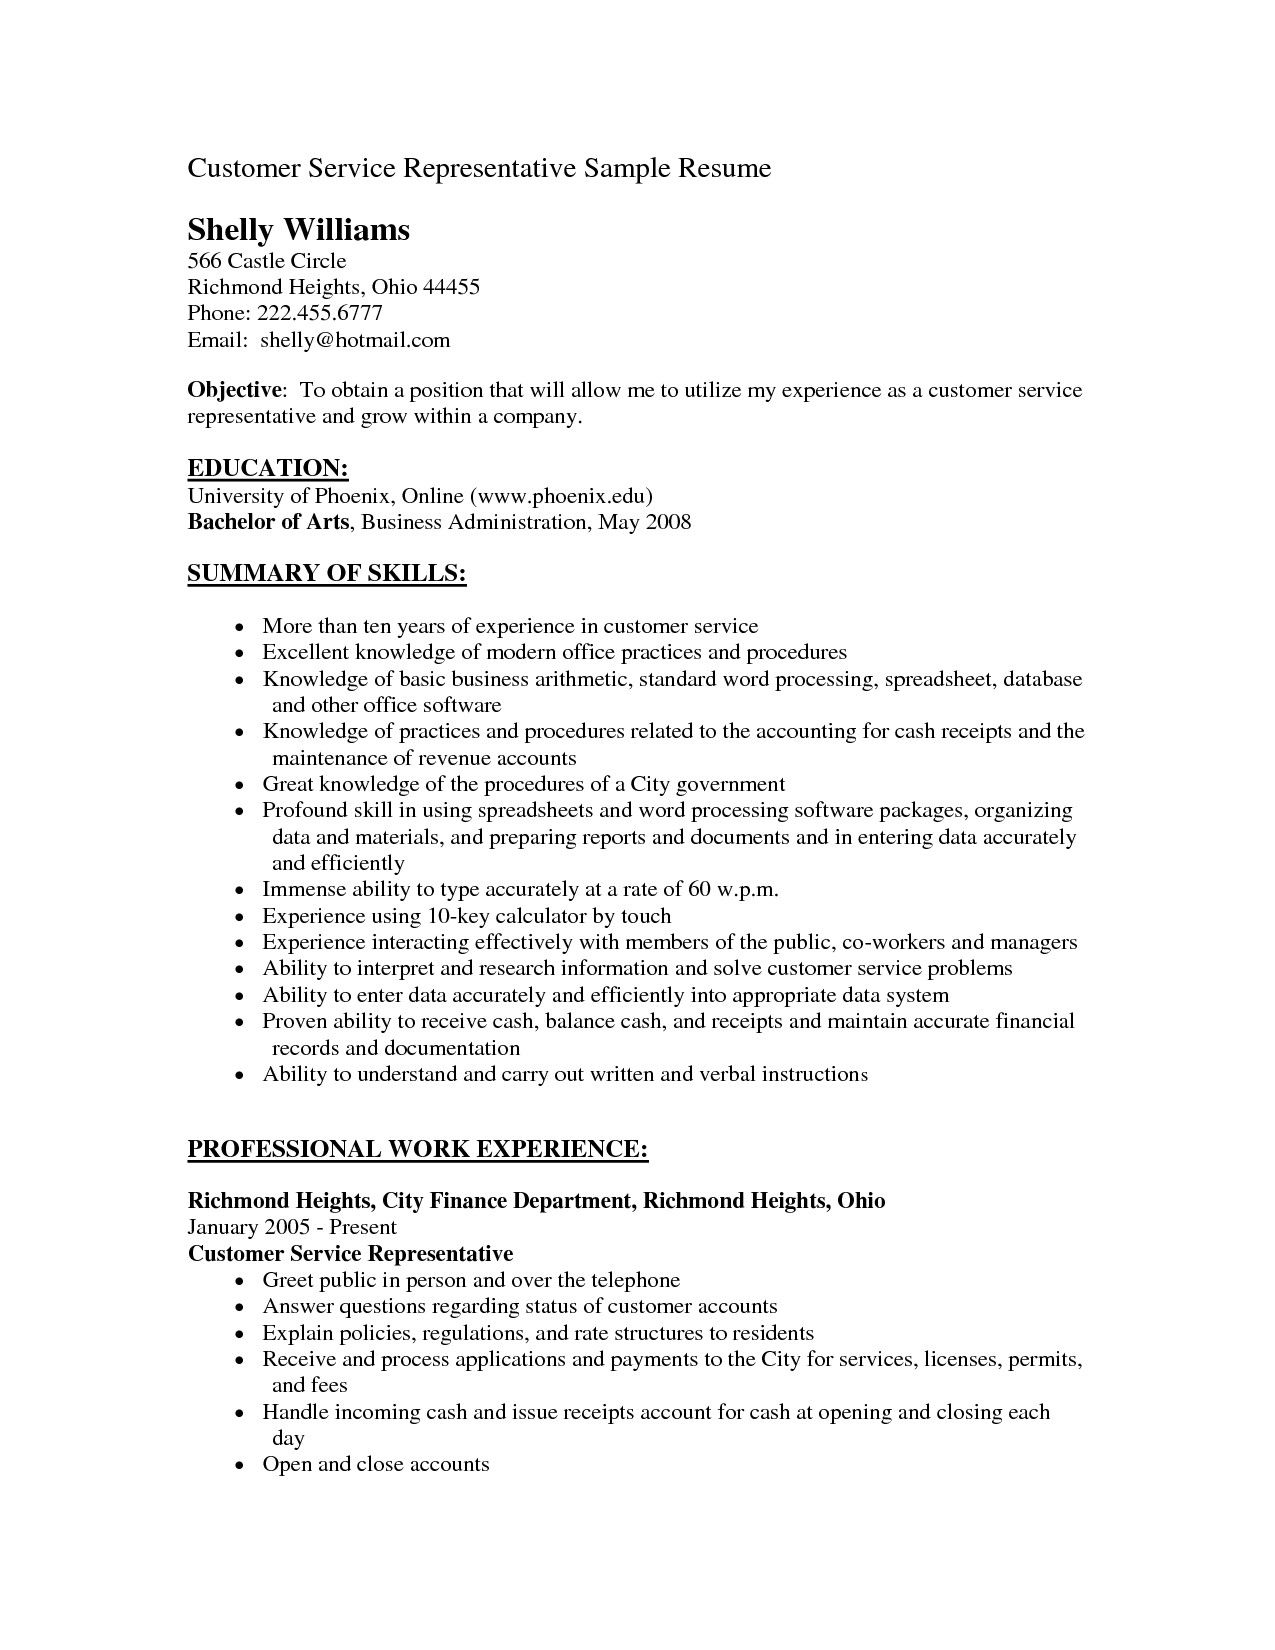 The Best Ideas for Objective On Resume Examples Job